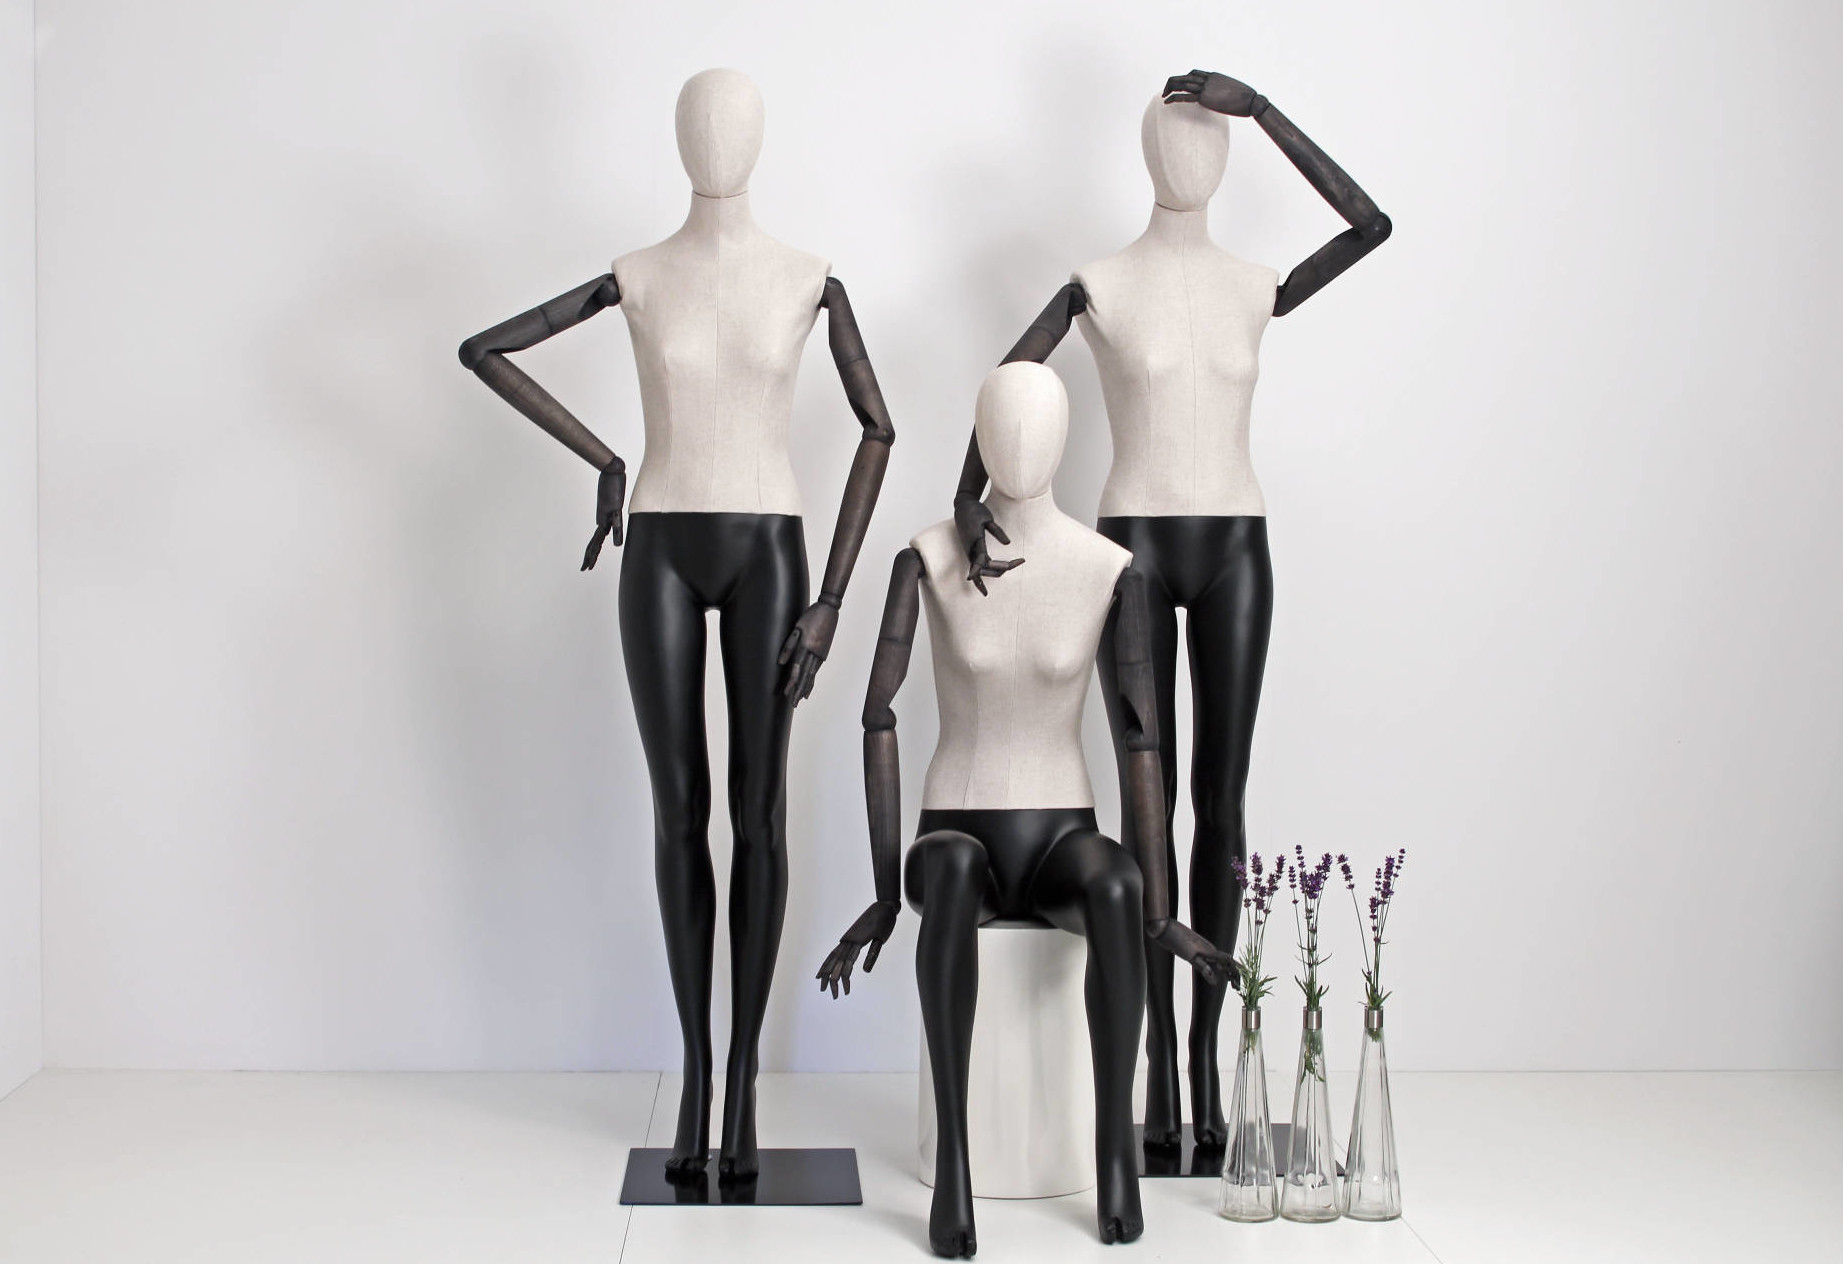 Articulated mannequins and torsoes. Fabric mannequins with articulated arms